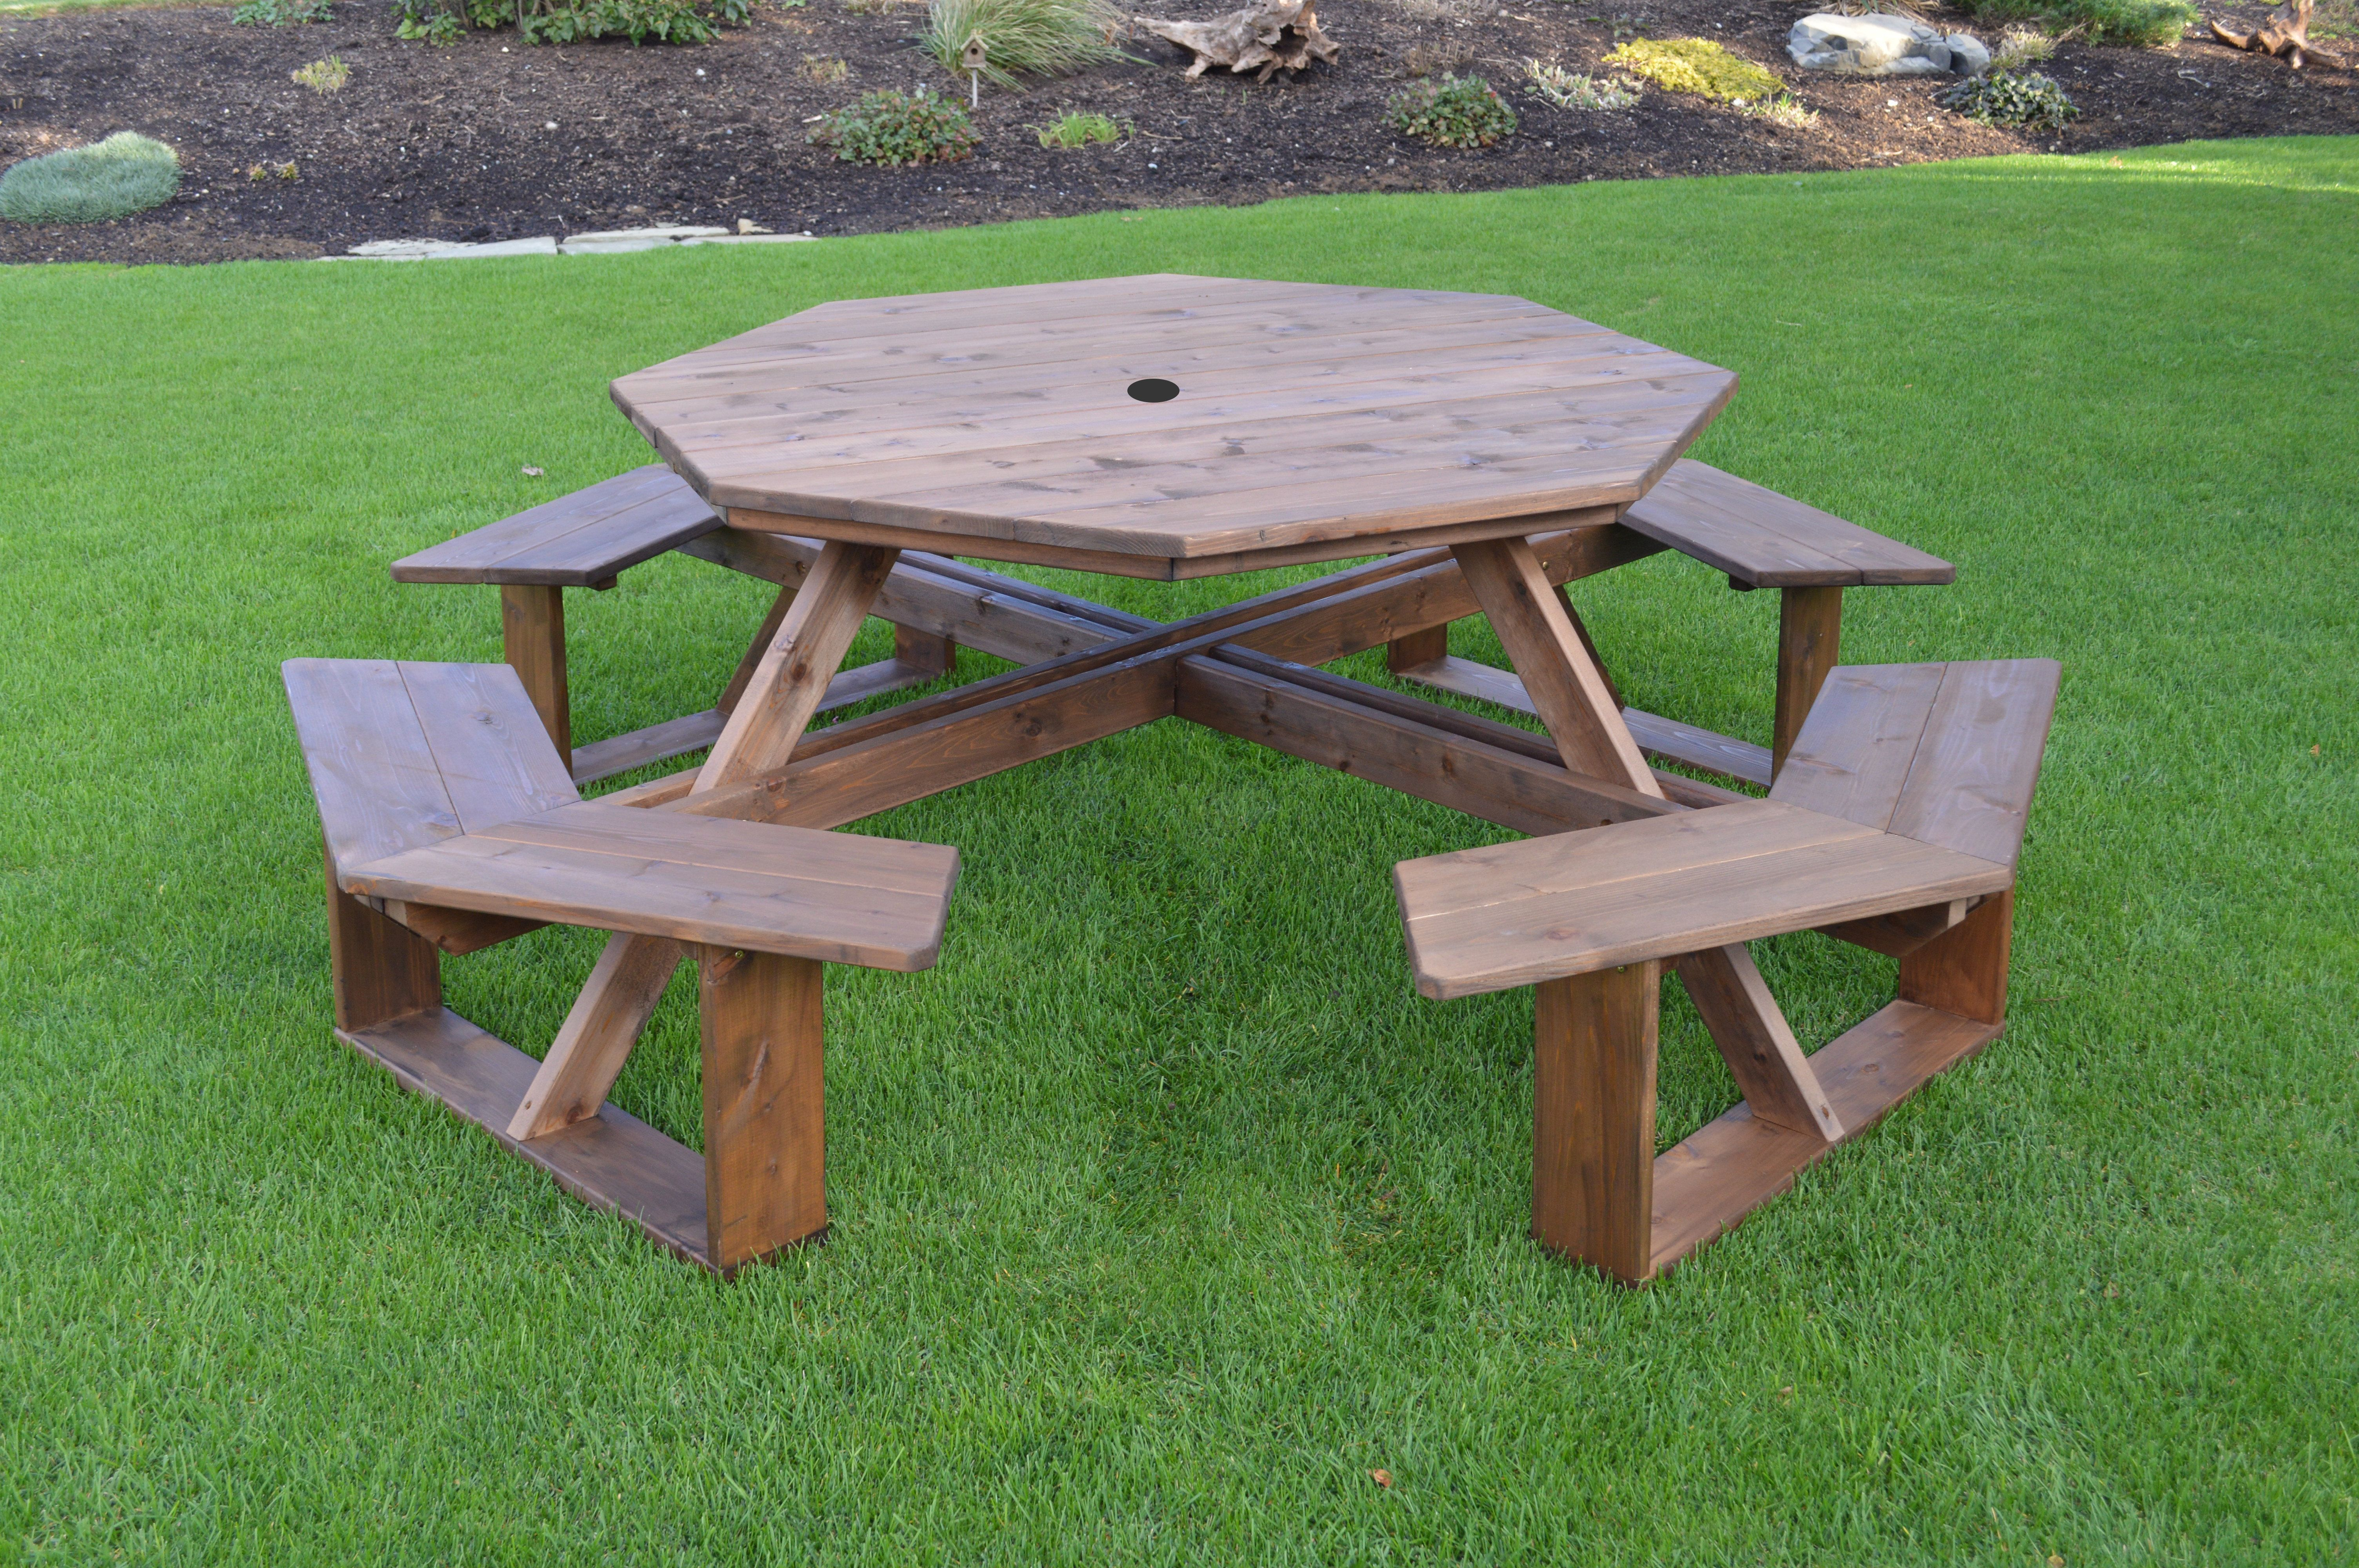 Free Woodworking Plans Hexagon Picnic Table Picnic Table Woodworking Plans Picnic Table Plans Picnic Table